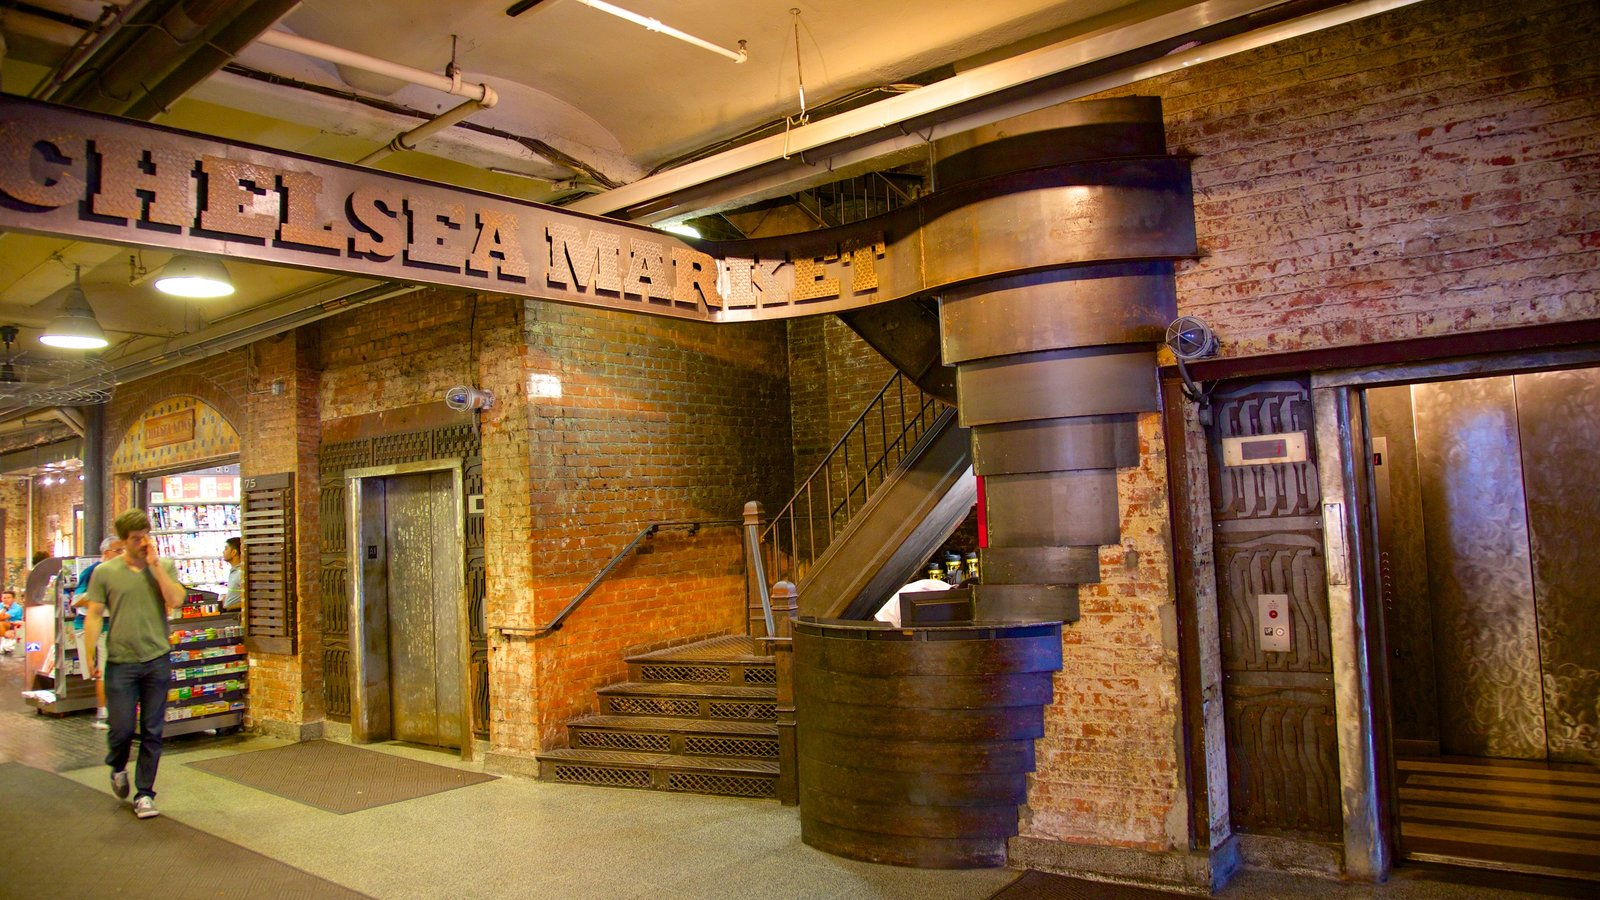 Chelsea Market showing interior views, markets and signage